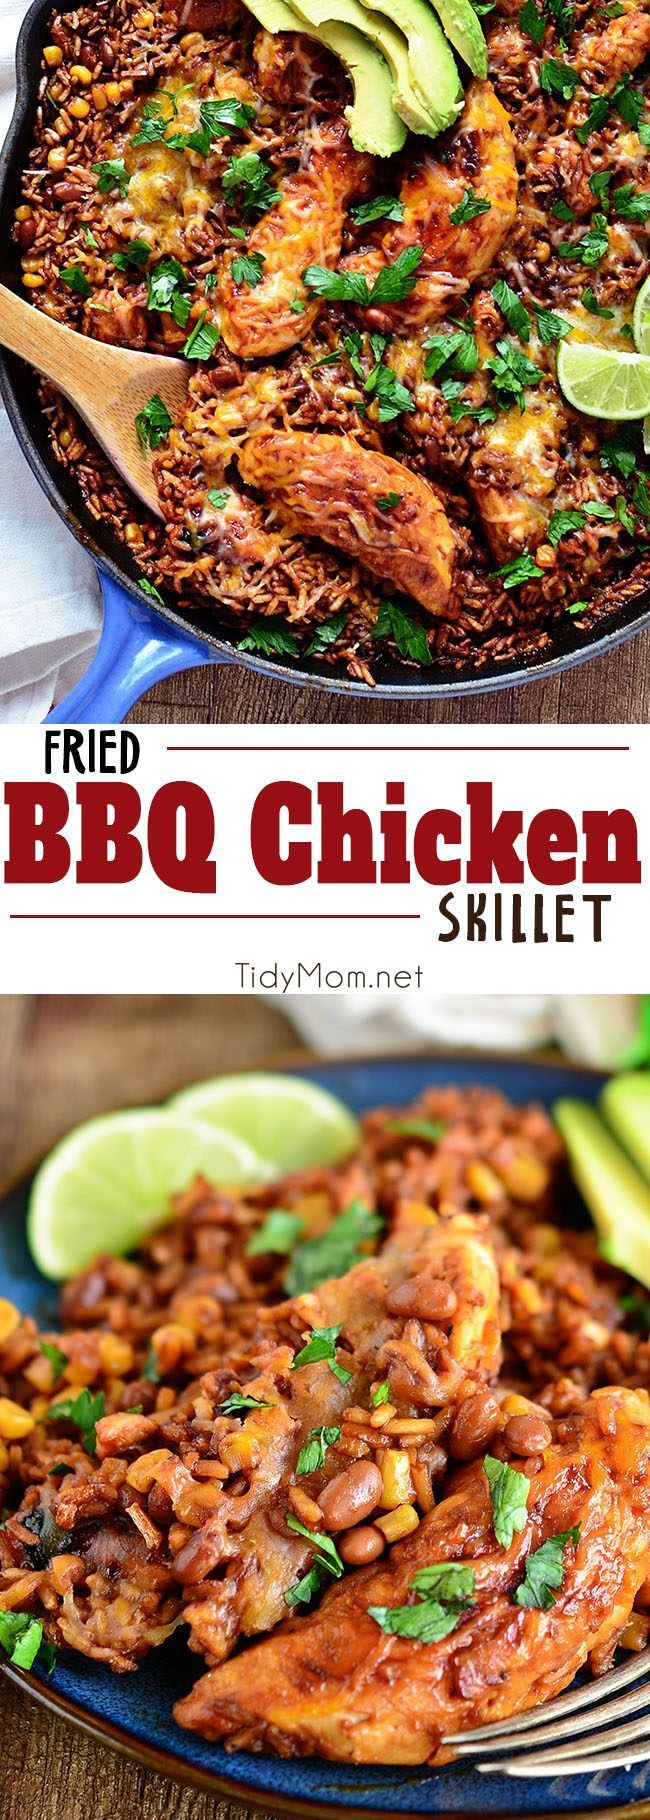 Fried BBQ Chicken Skillet Dinner | #HealthyEating #CleanEating Sherman Financial Group